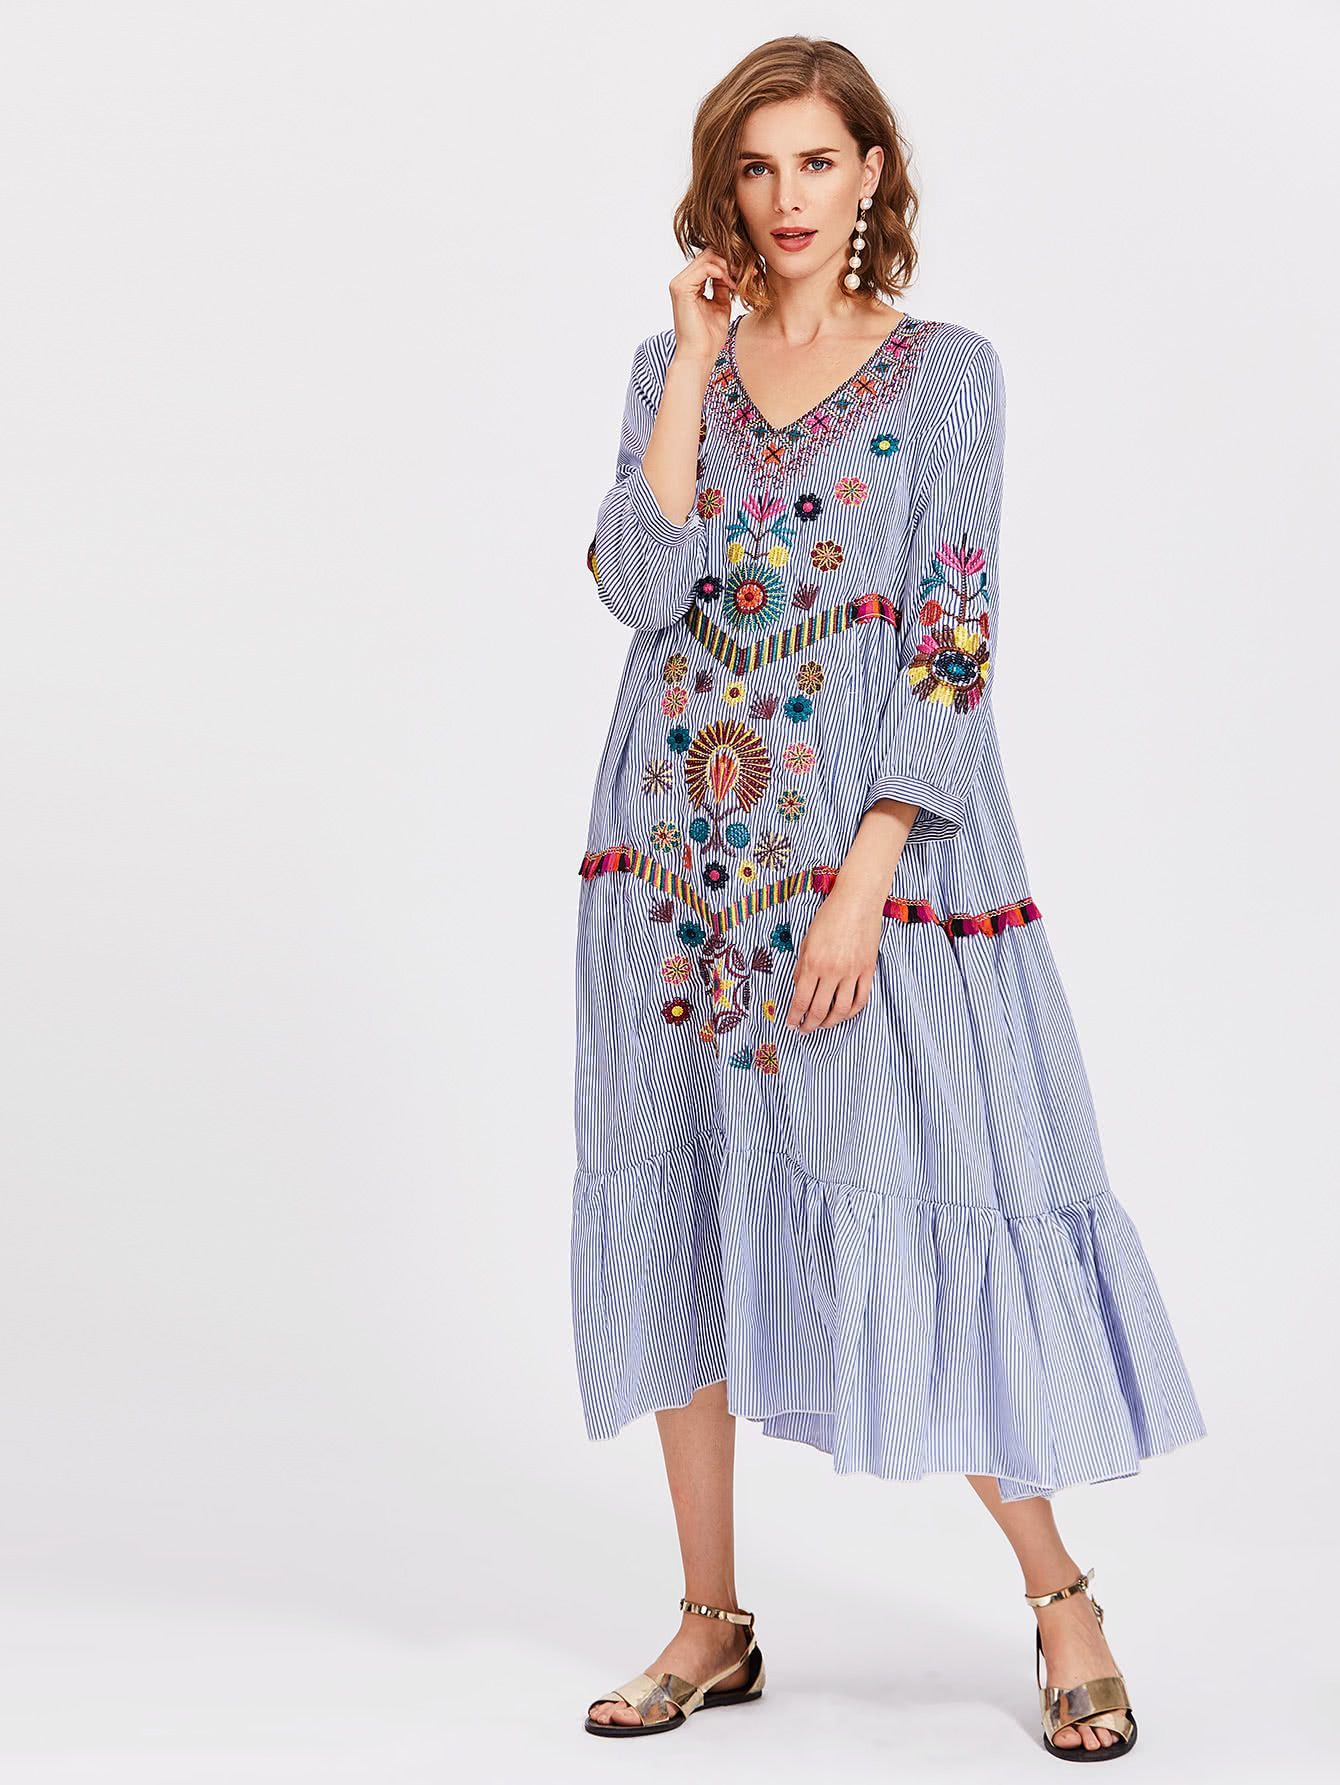 Vertical Striped Flower Embroidered Frill Hem Dress Shein Sheinside